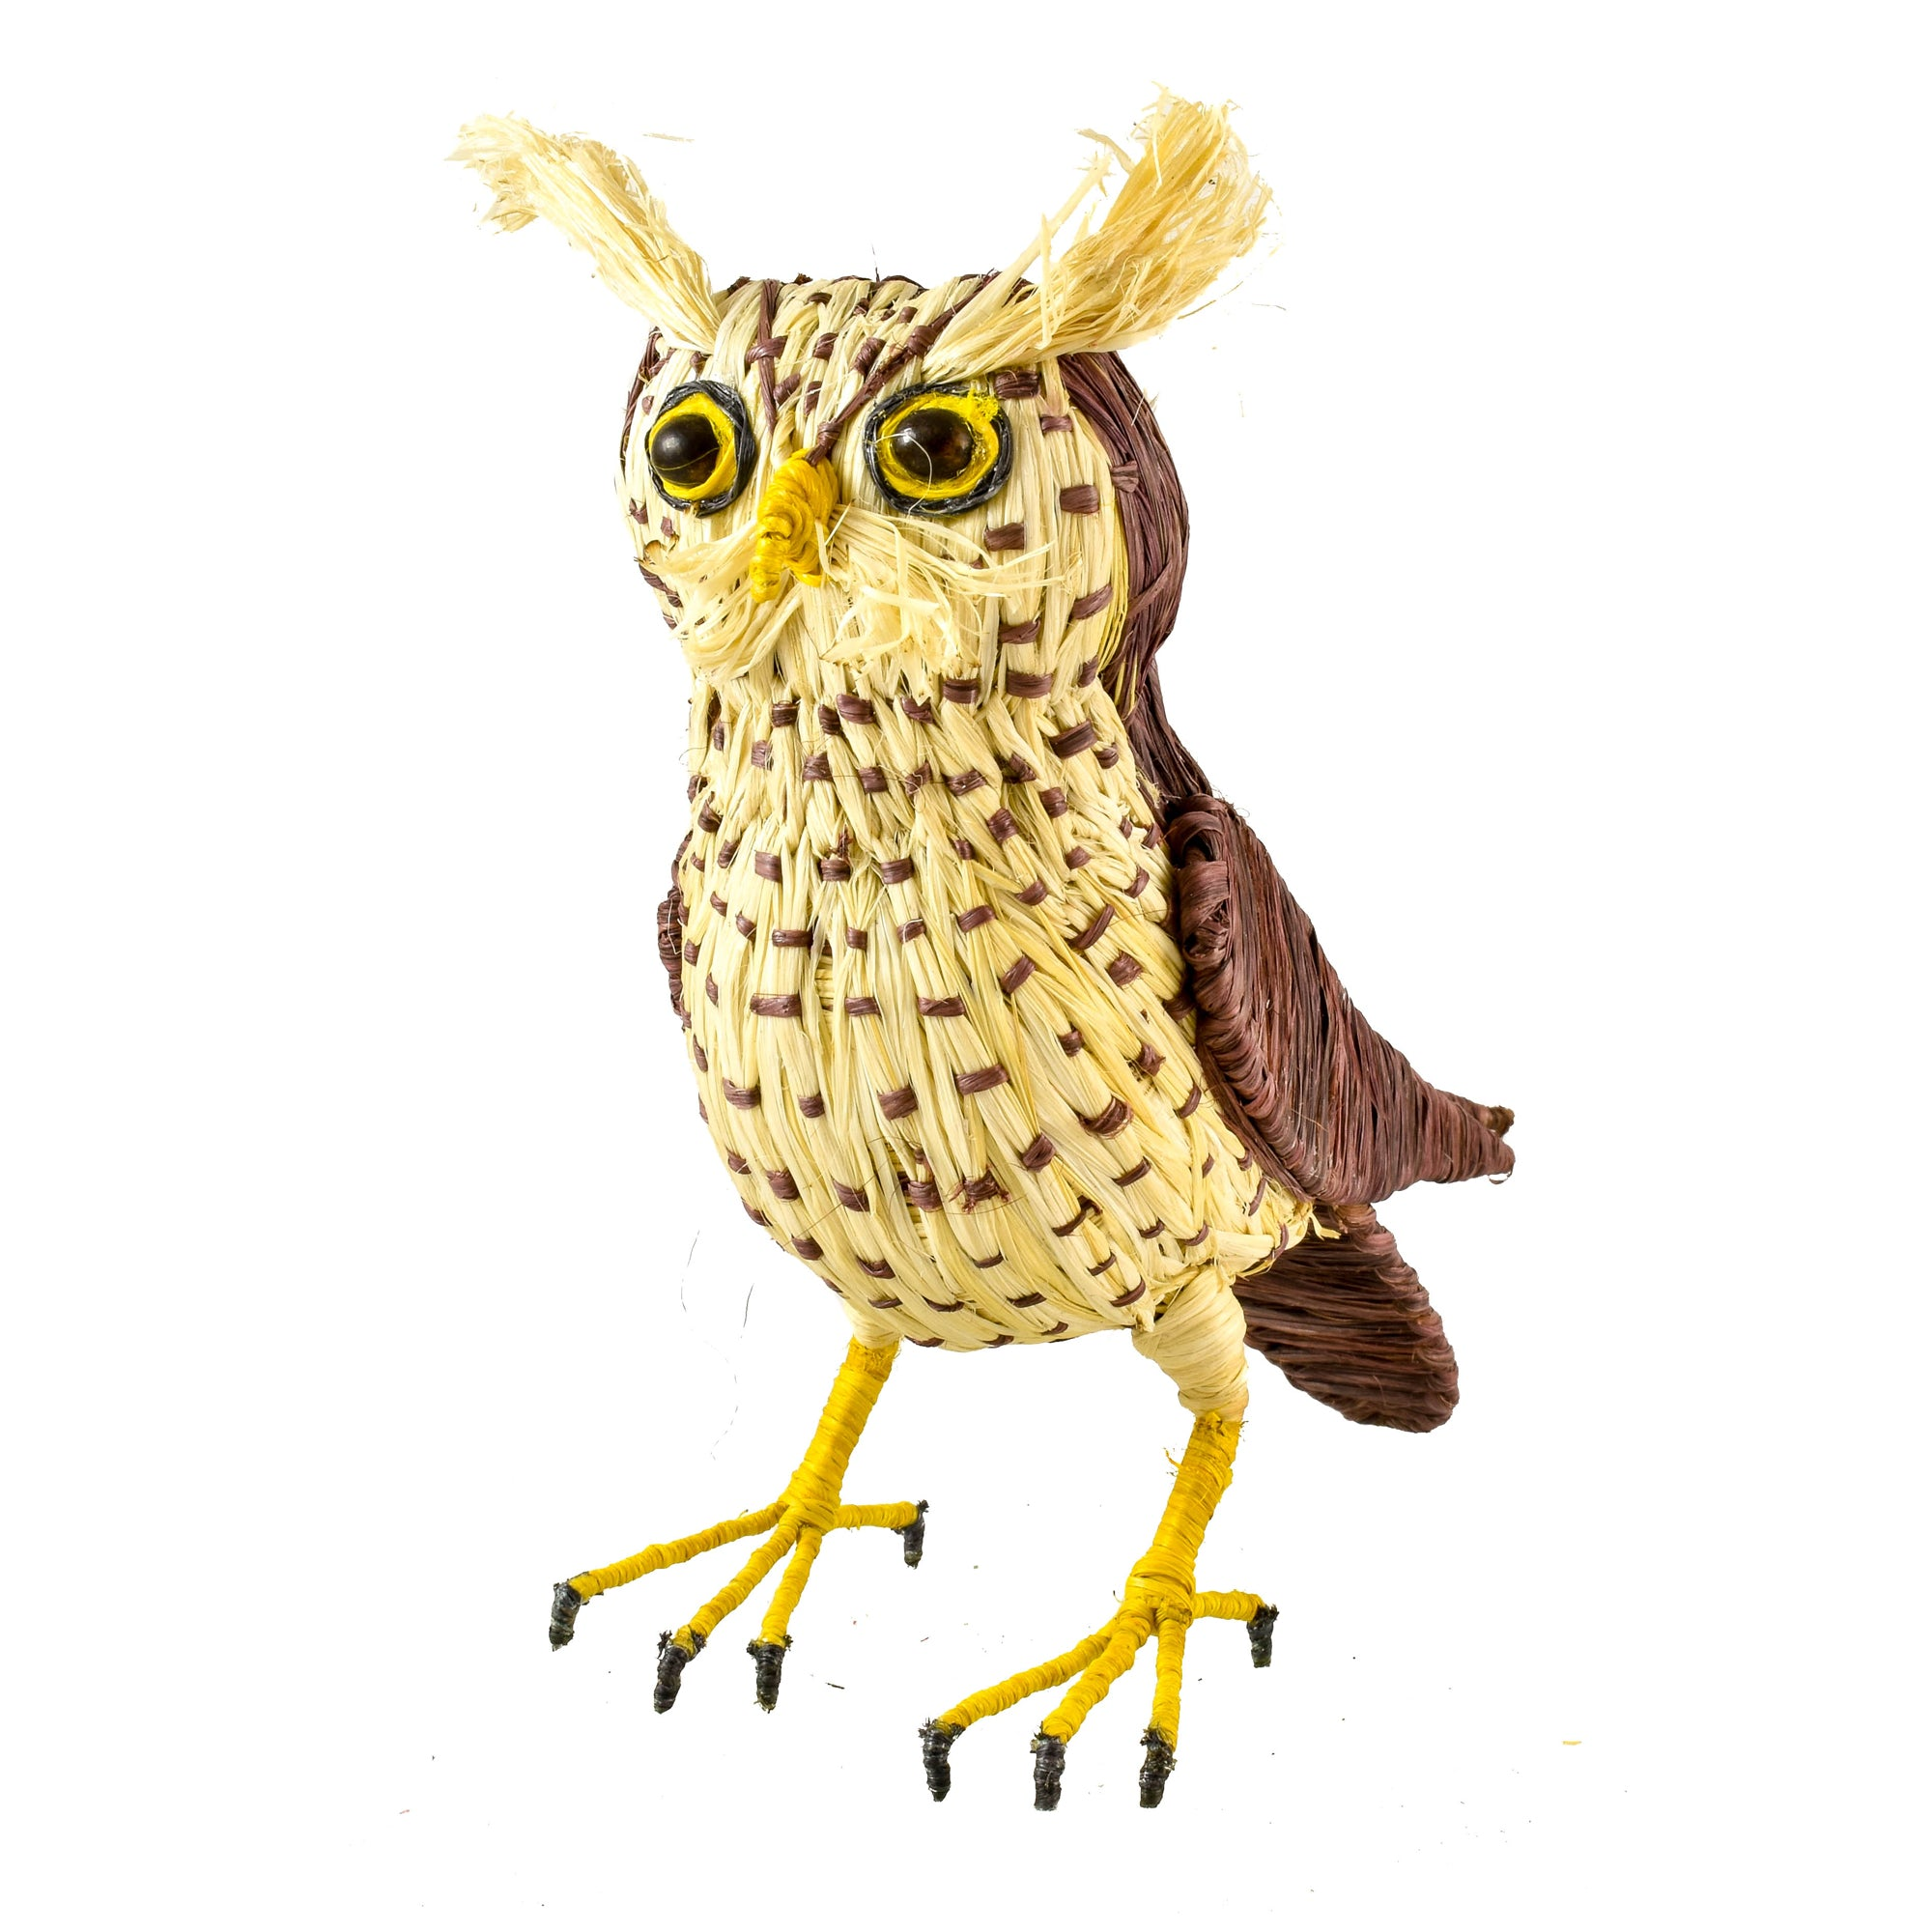 STRIPED OWL BIRD - FAIR-TRADE CHRISTMAS TREE ORNAMENT - WOVEN BY PERUVIAN AMAZON ARTISAN